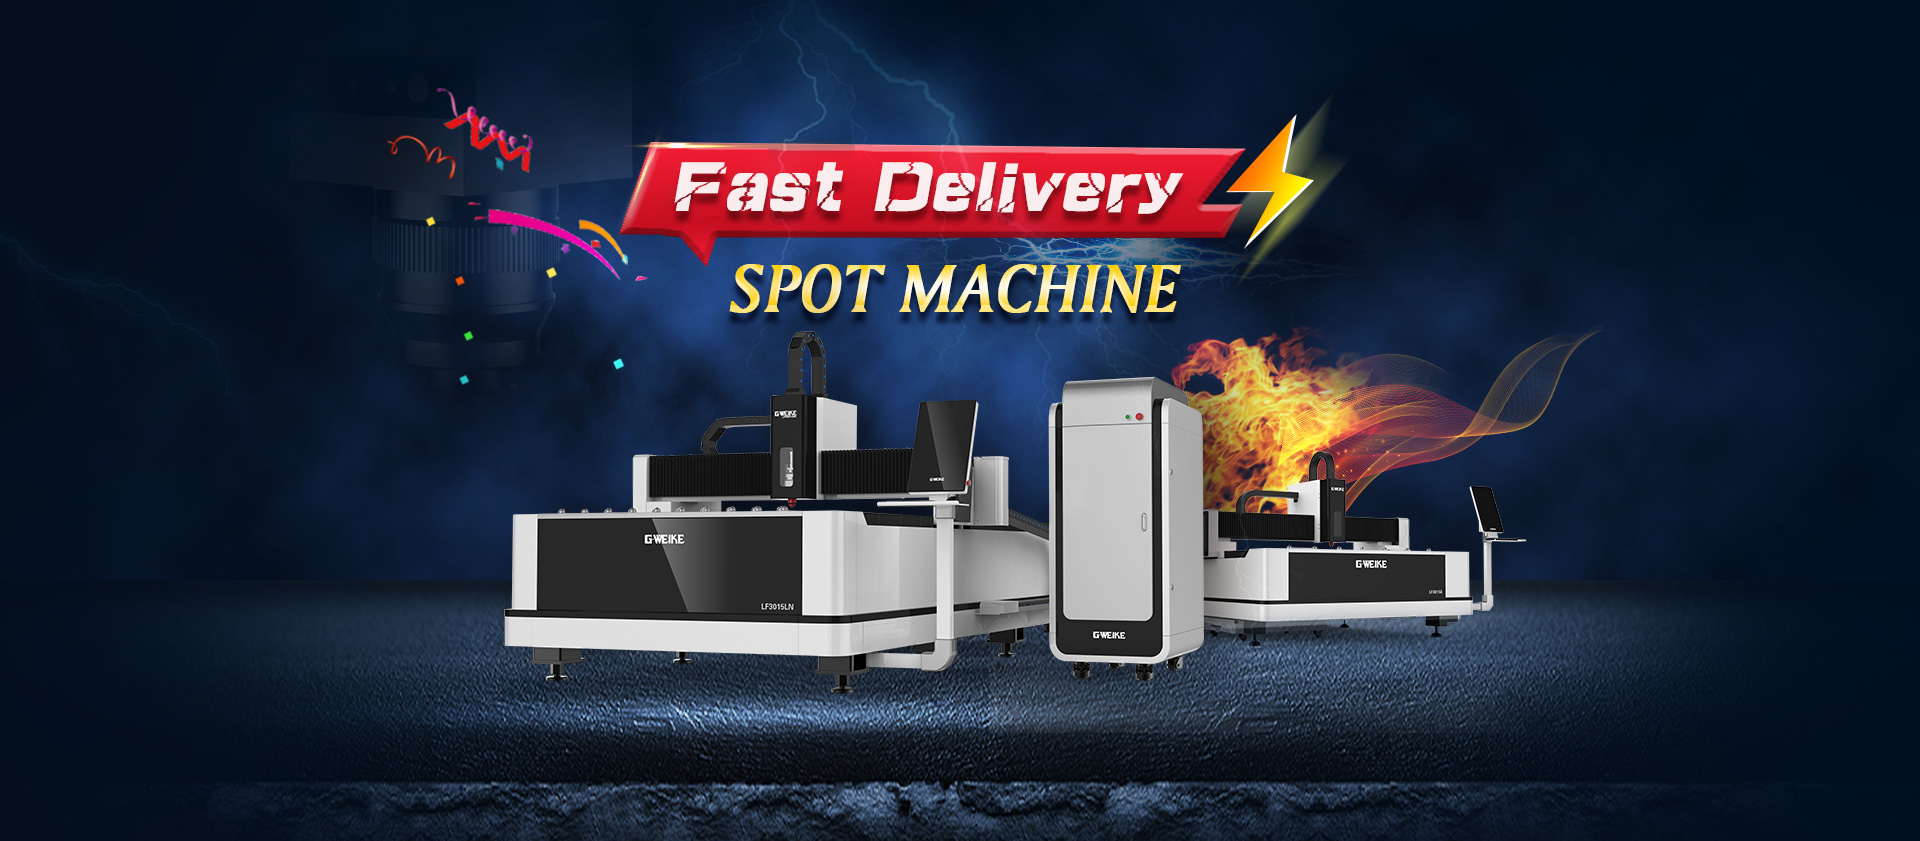 LF3015GA WHOLE COVER FIBER LASER CUTTING MACHINE